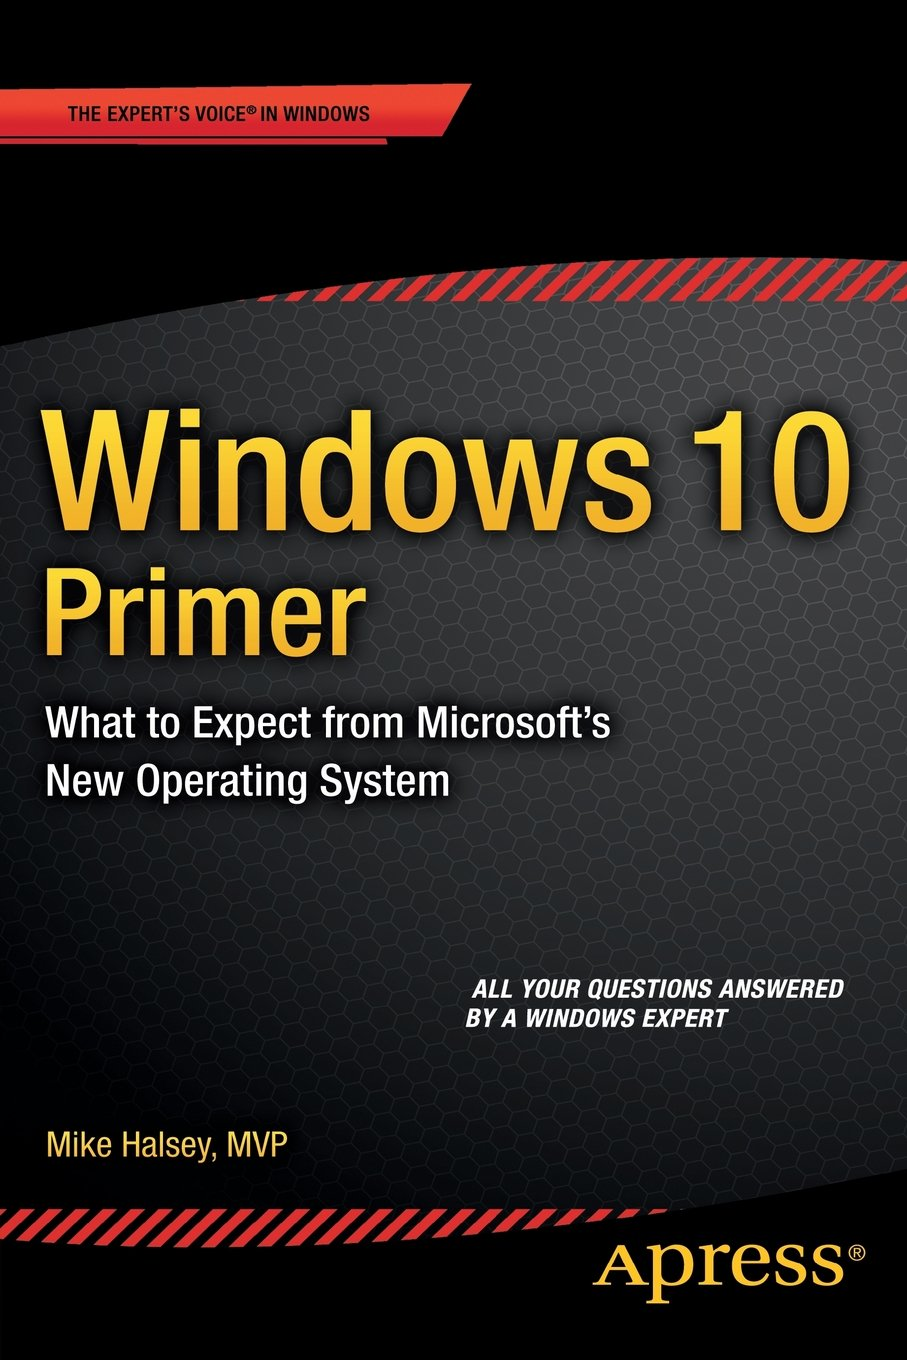 Windows 10 Primer: What to Expect from Microsoft's New Operating System free download